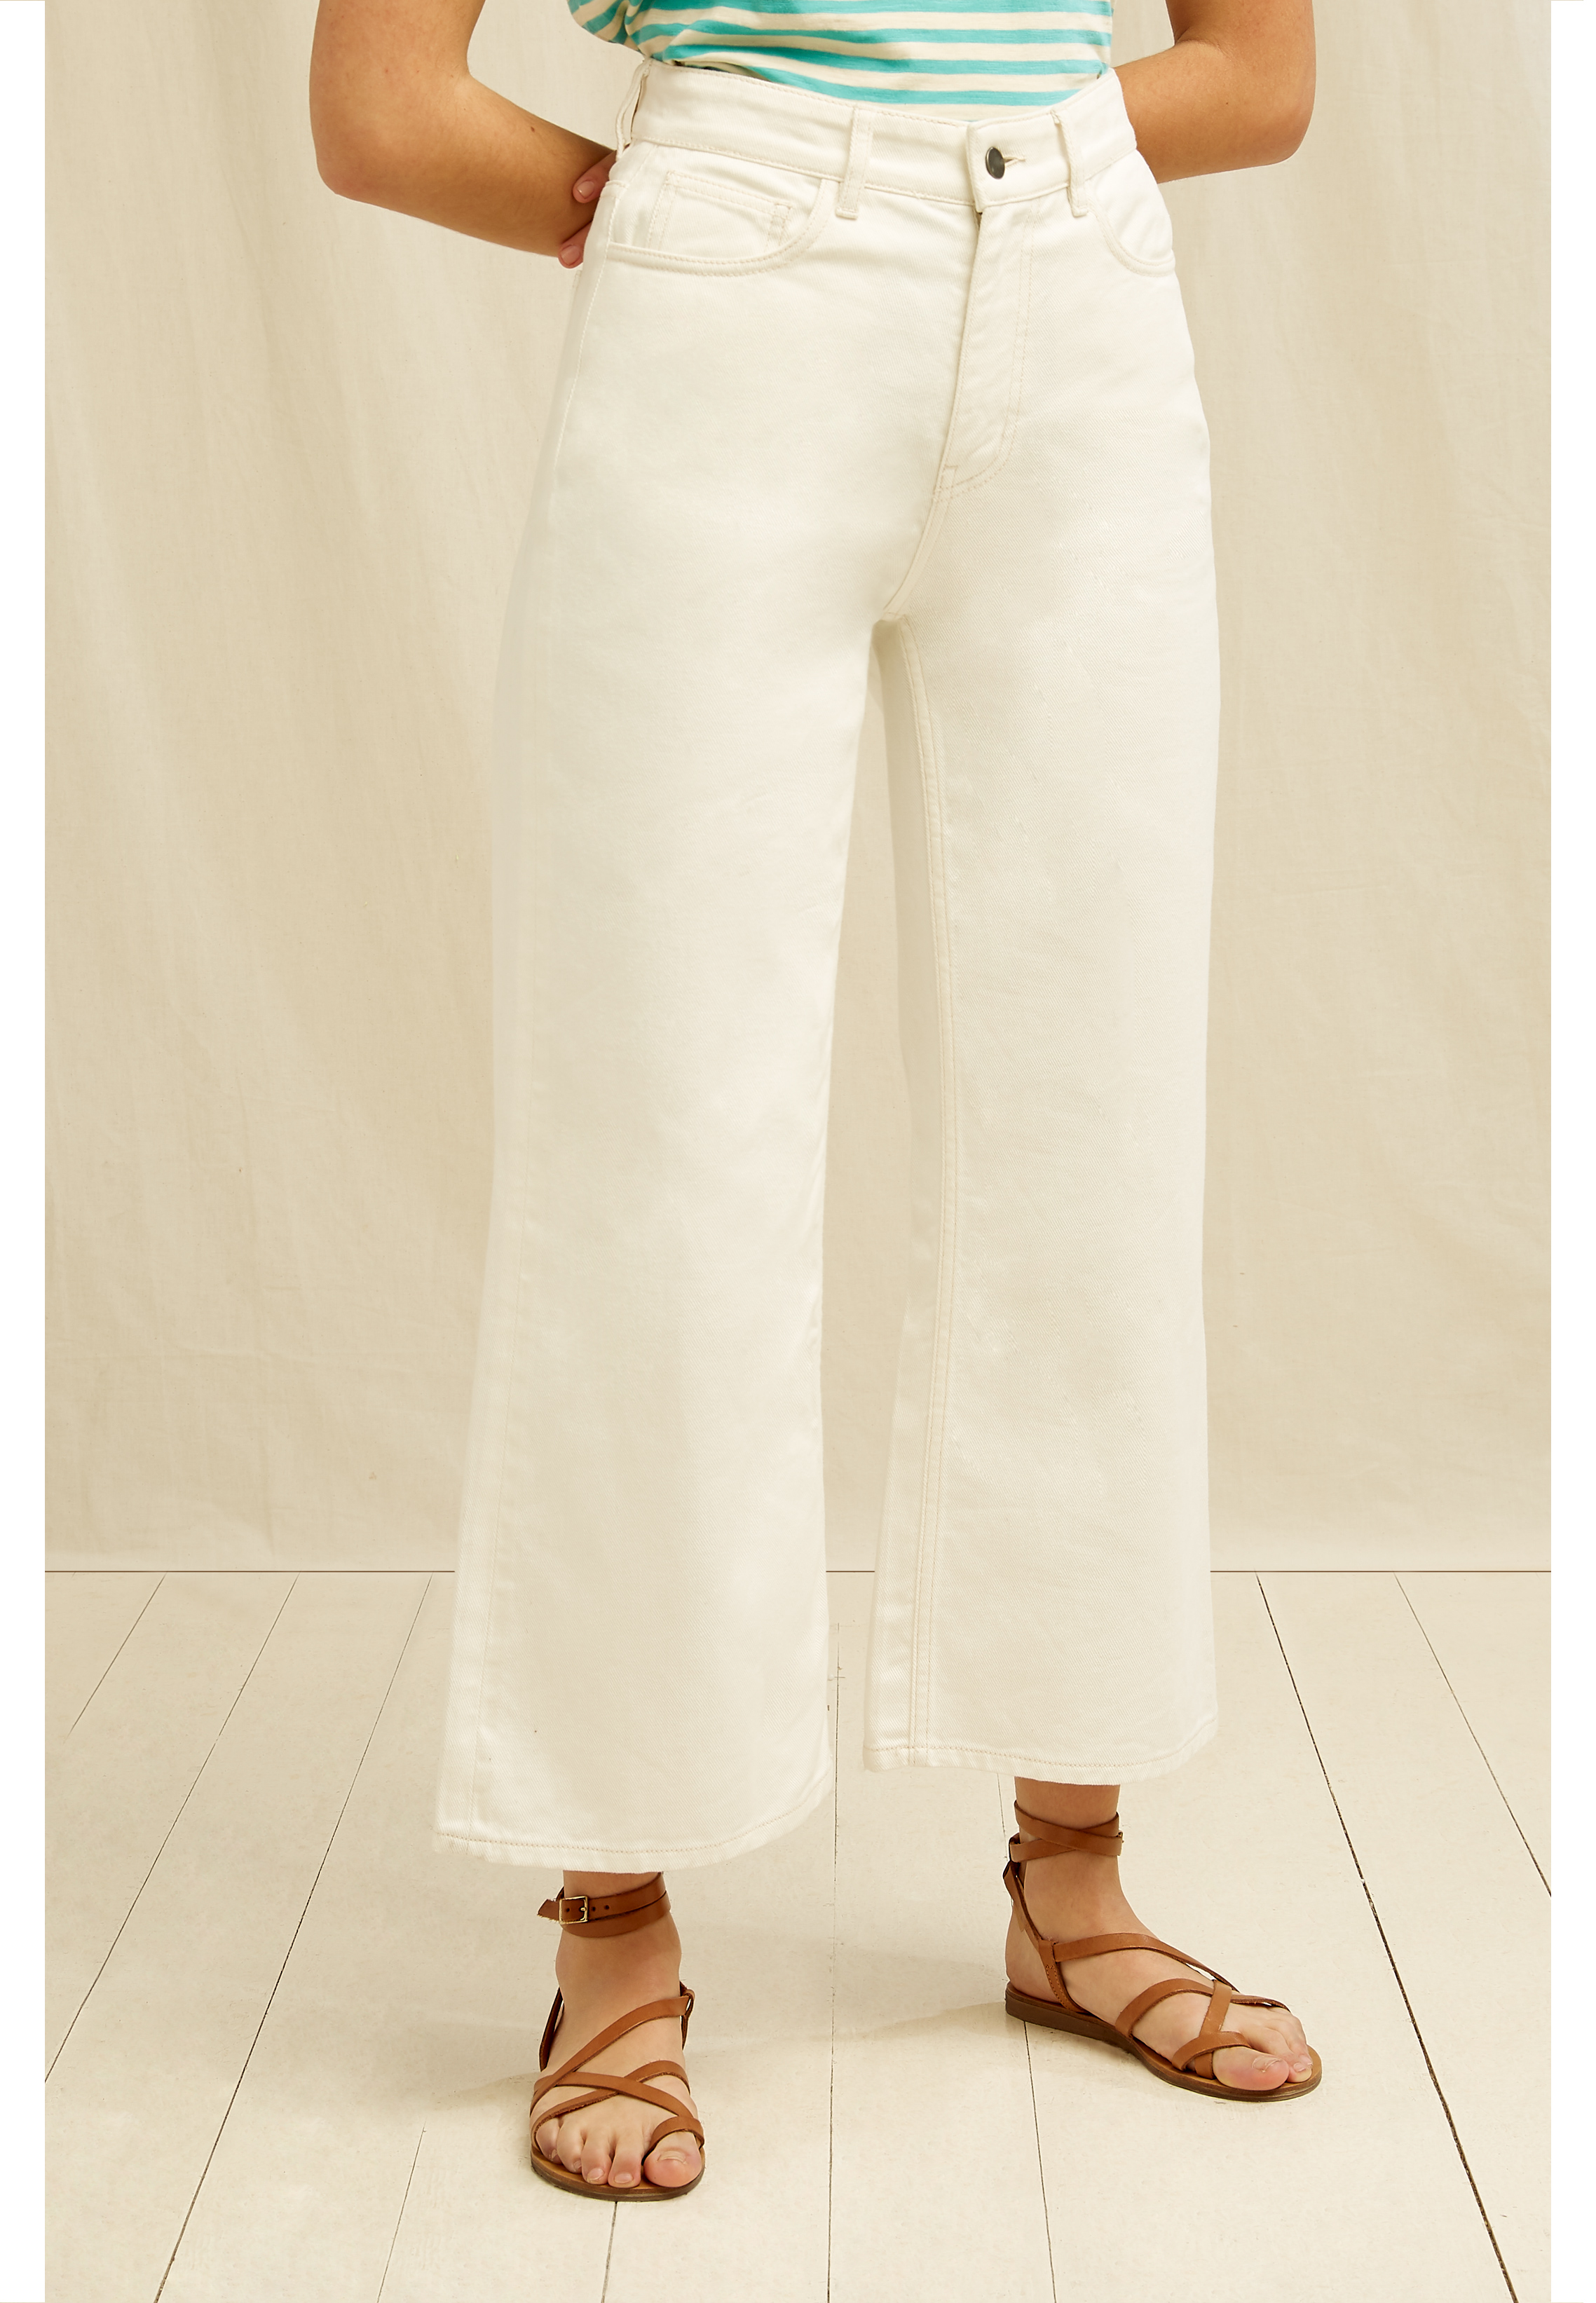 Ariel Wide Leg Jean In Cream 16